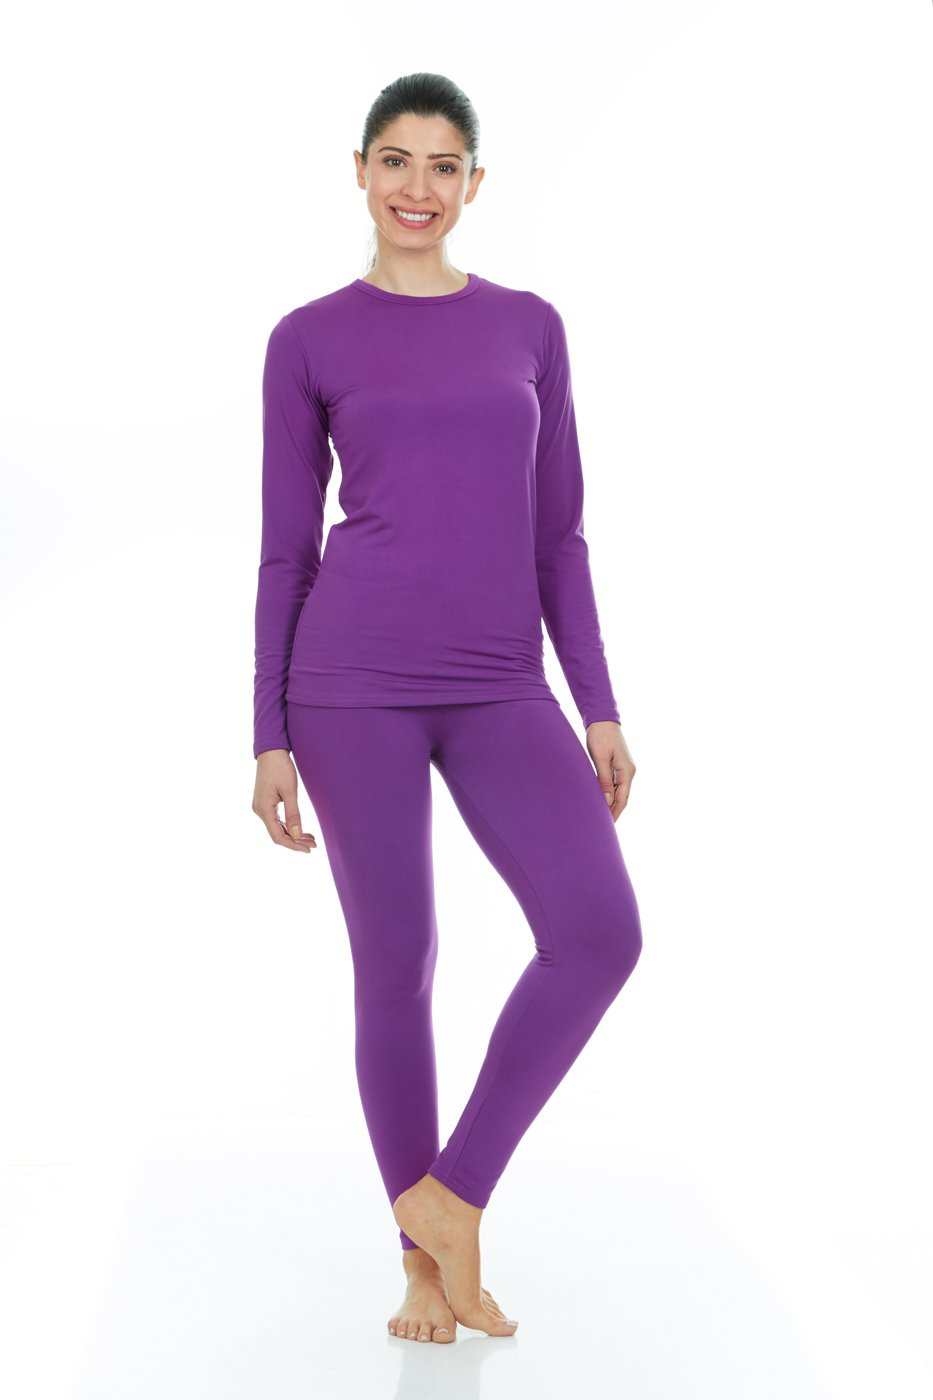 Thermajane Women's Ultra Soft Thermal Underwear Long Johns Set with Fleece Lined (XX-Small, Purple)